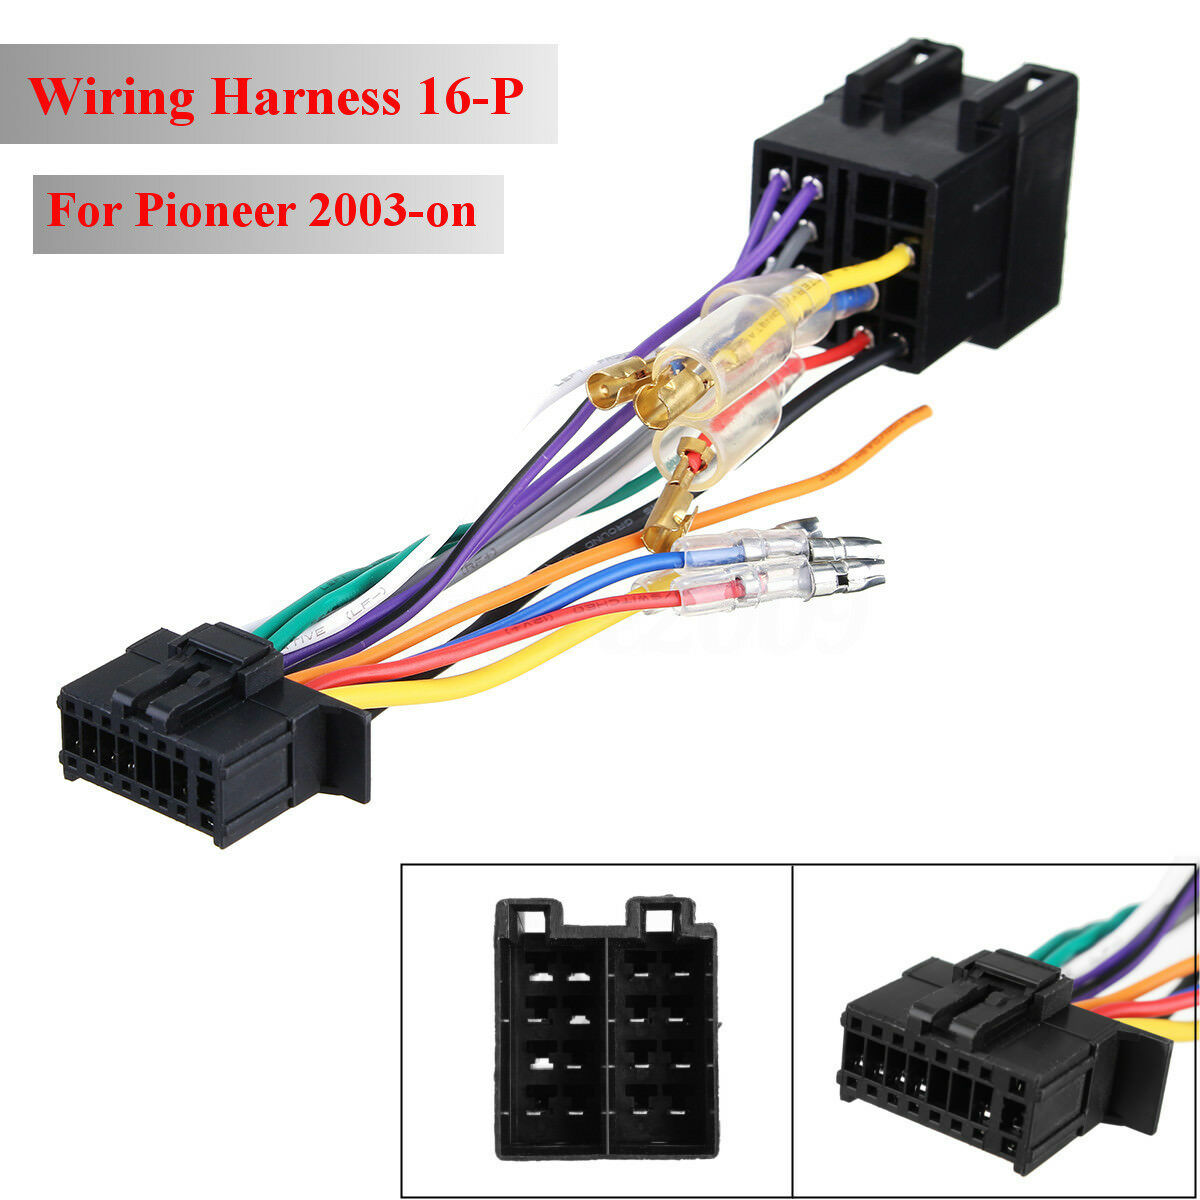 Car Stereo Radio Iso Wiring Harness Connector 16 Pin Pi100 For Pioneer 2003 2018 323 1 Of 6free Shipping